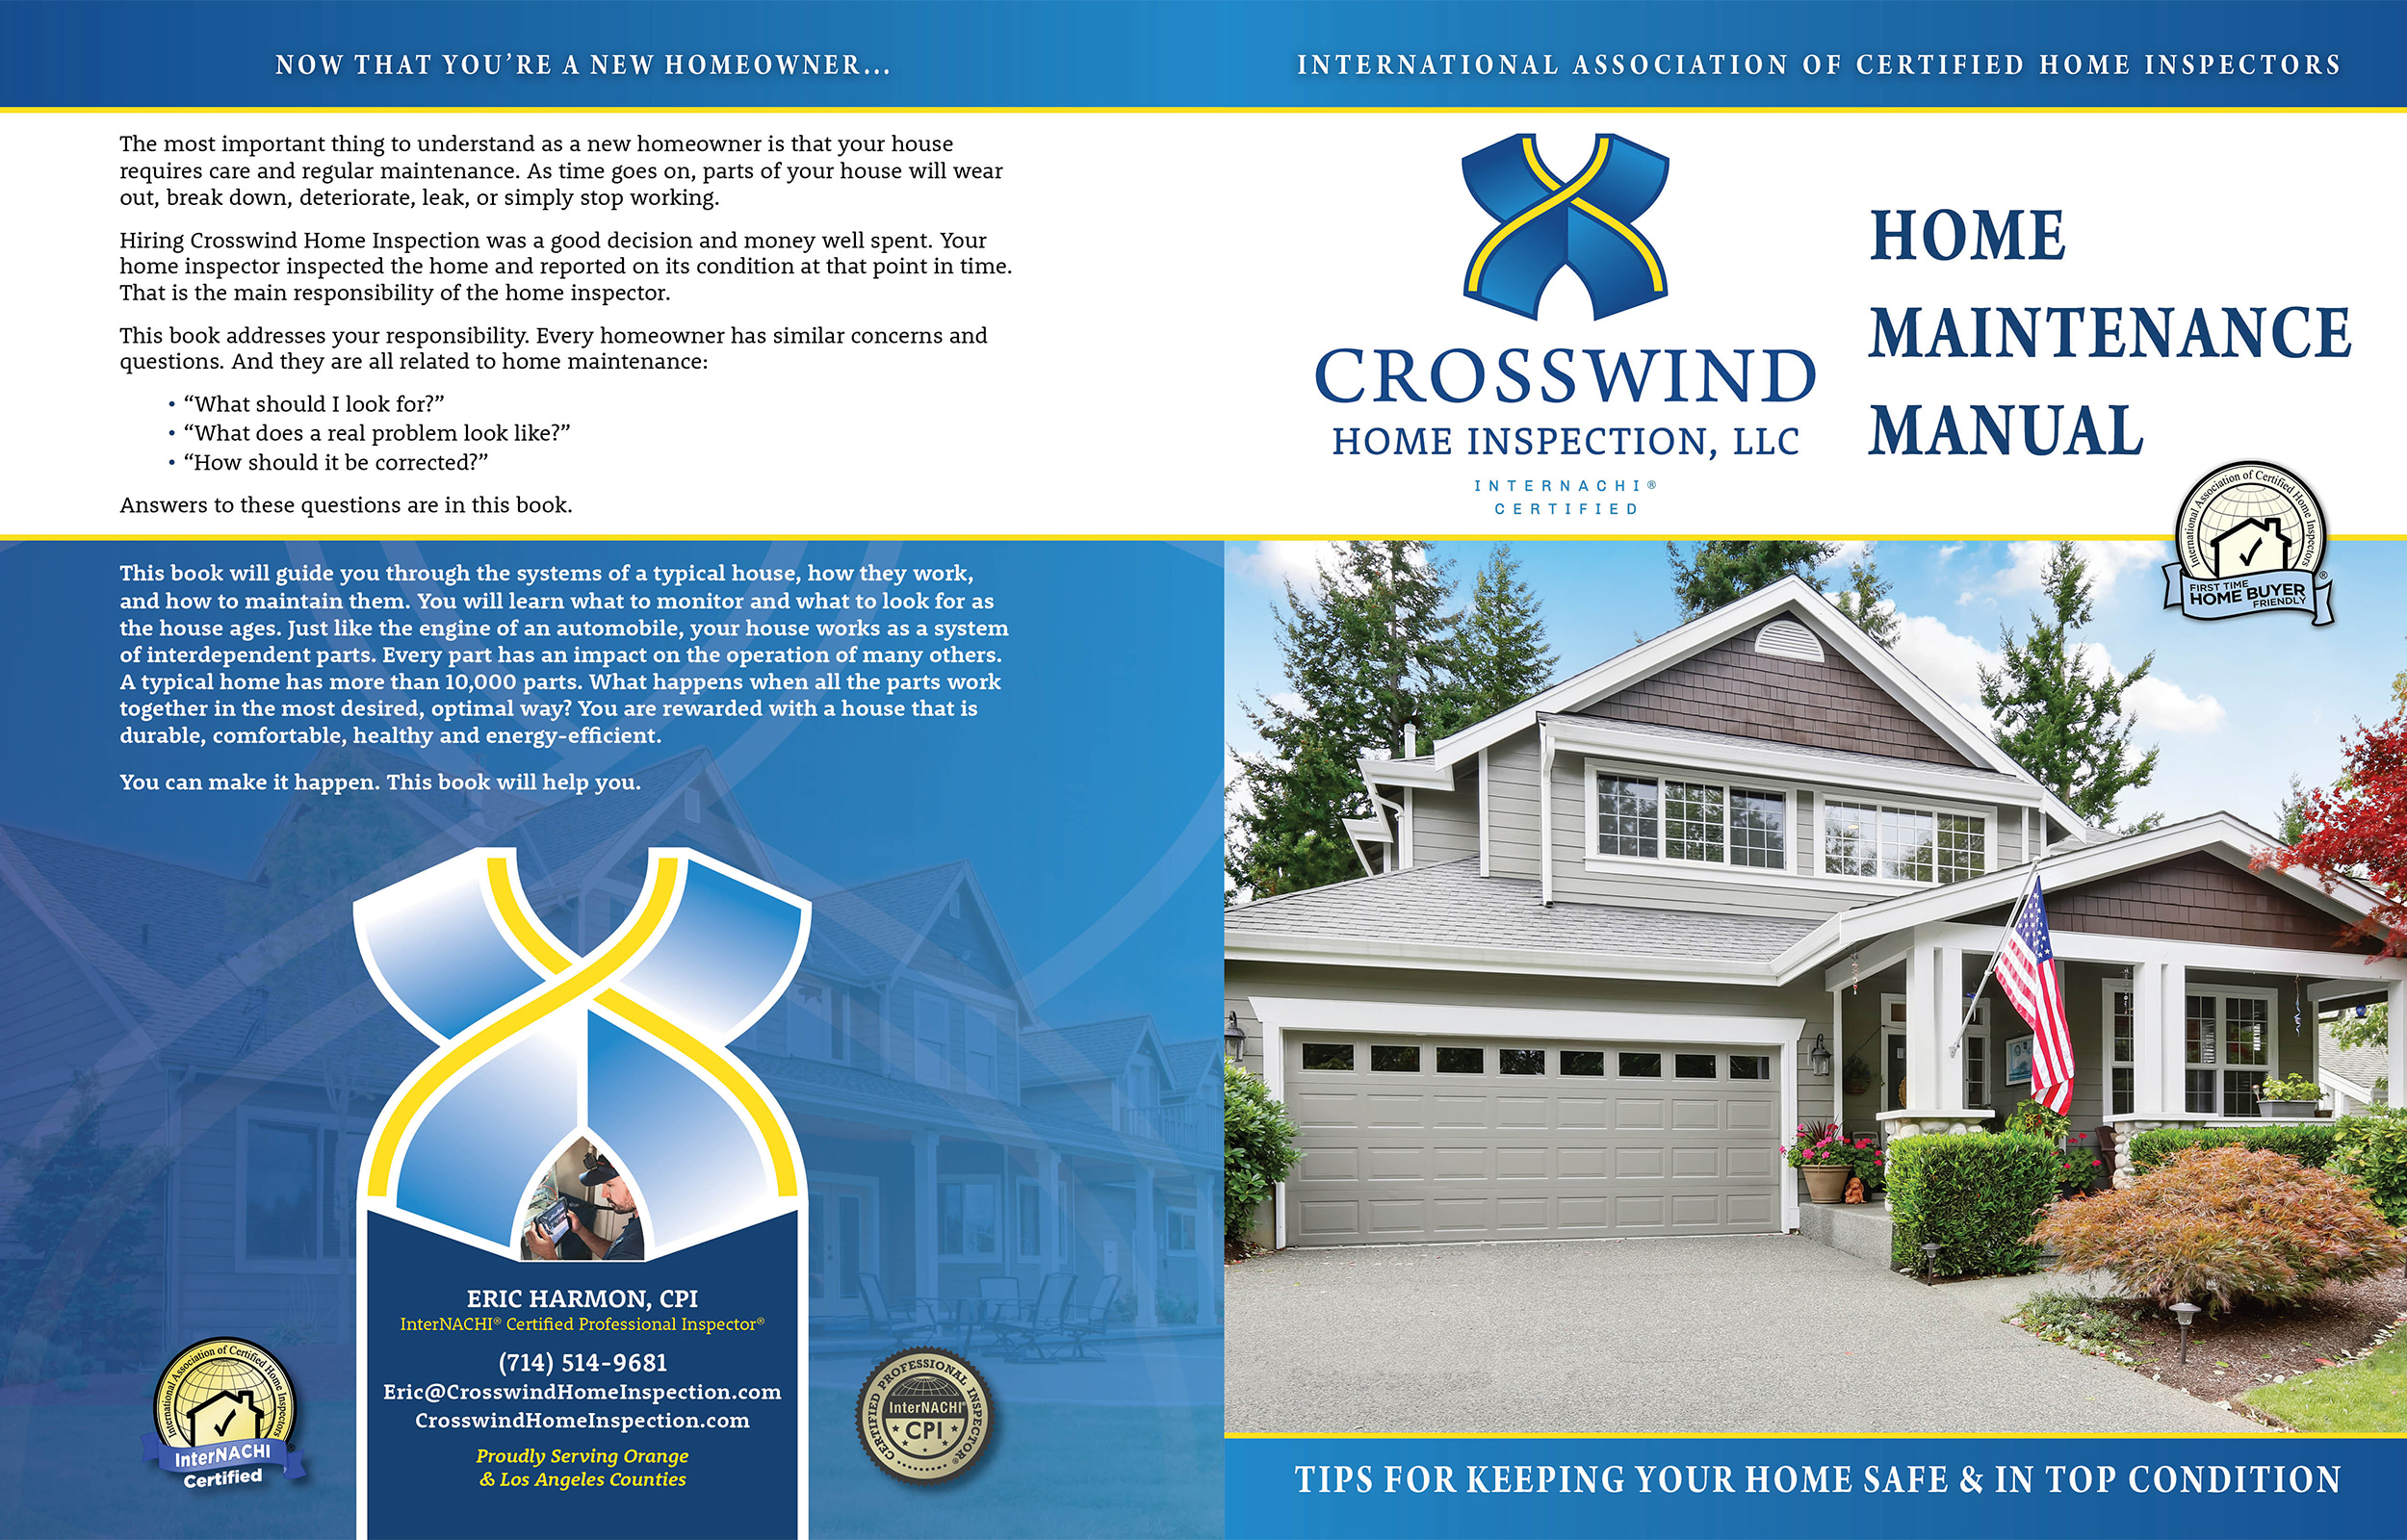 Custom Home Maintenance Book for Crosswind Home Inspections